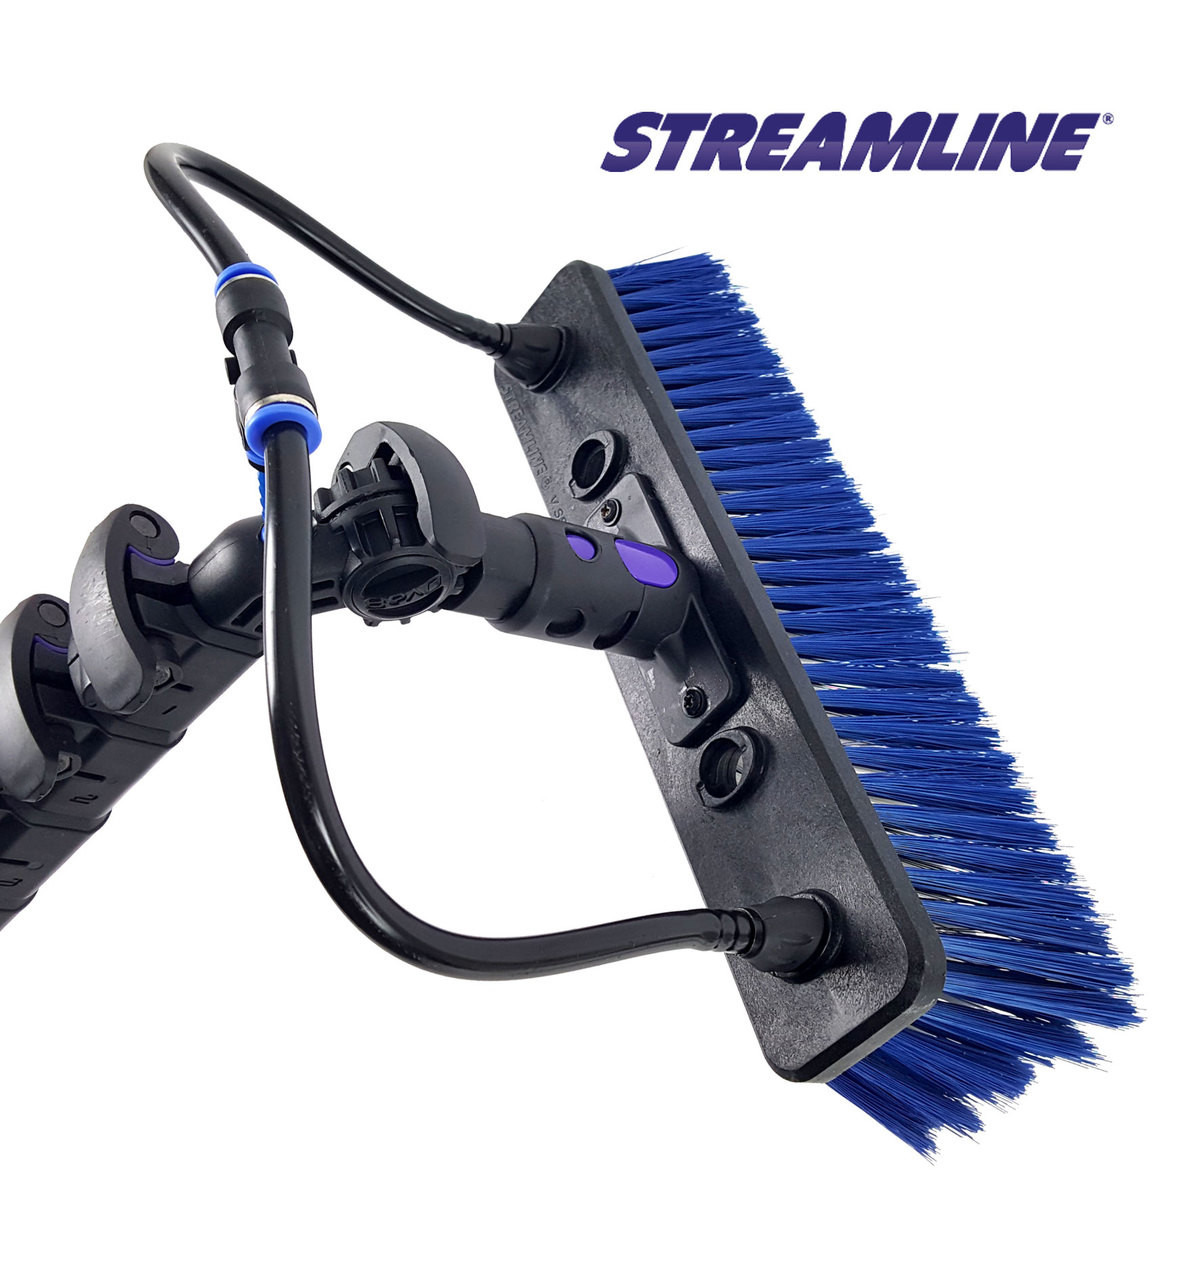 STREAMLINE® OVA8 100% Carbon Waterfed Pole w/tube and Brush